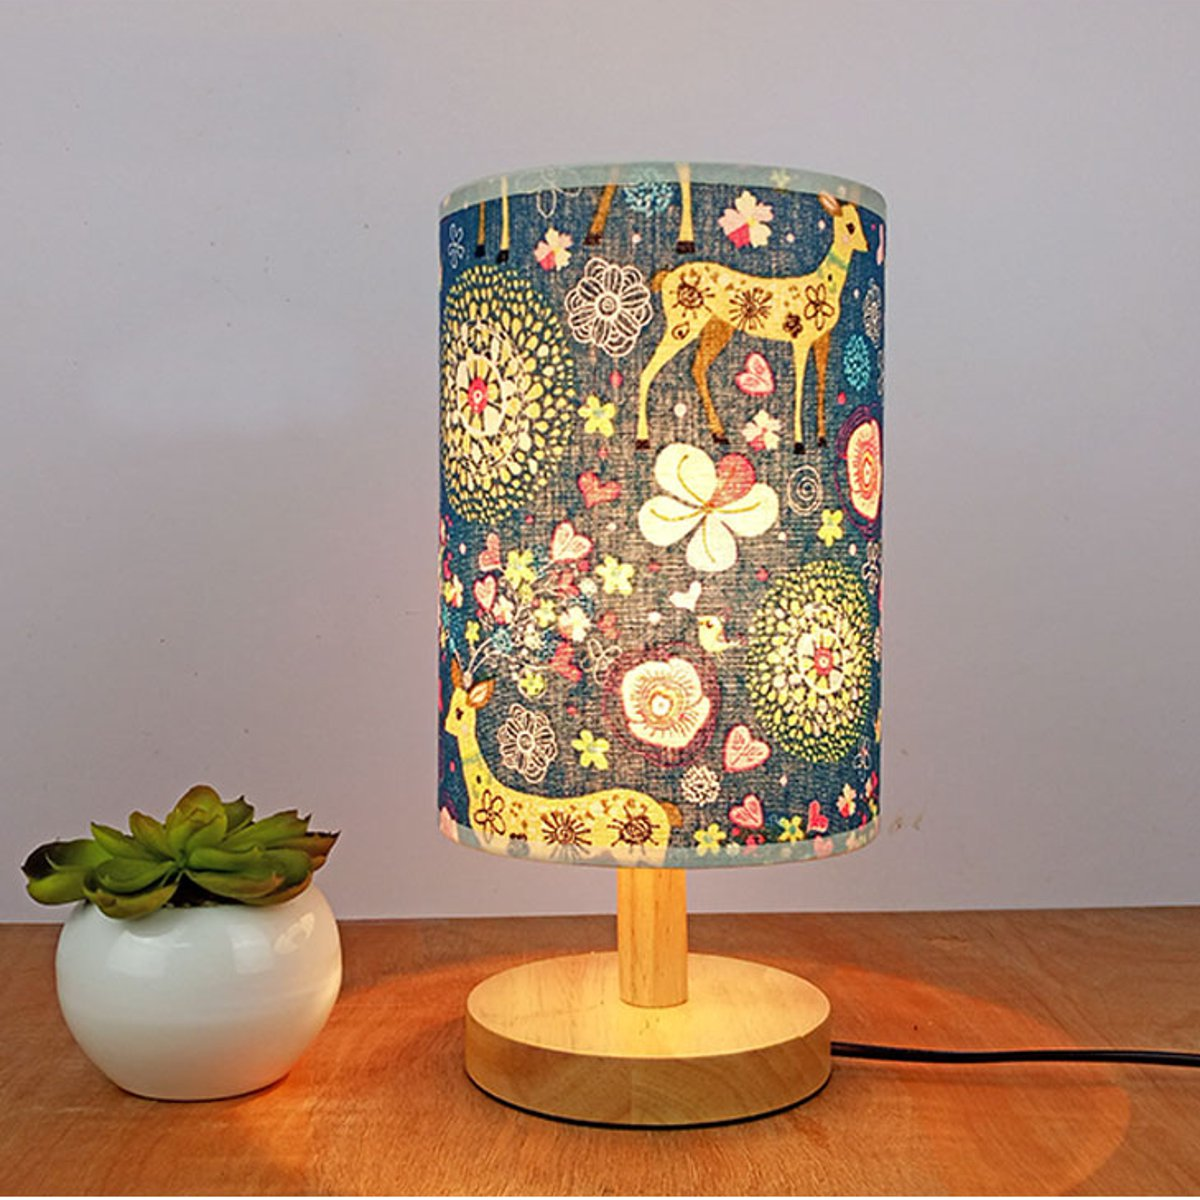 14*20CM Vintage Lampshade Fot E27 Lamp Holder Floral Bird Lamp Cover Shade Table Ceiling Light Cover Indoor Lighting Accessories